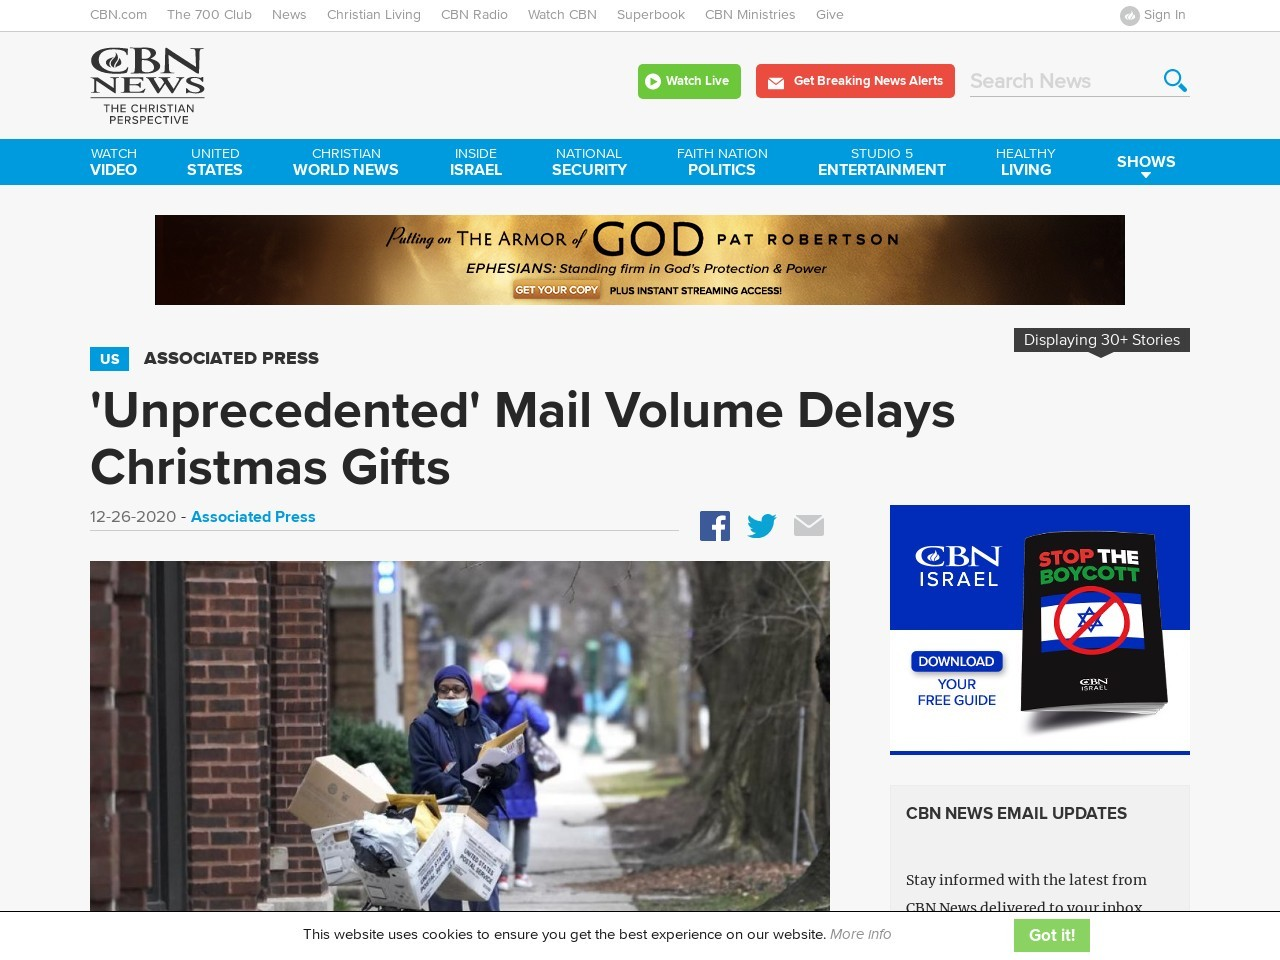 'Unprecedented' Mail Volume Delays Christmas Gifts